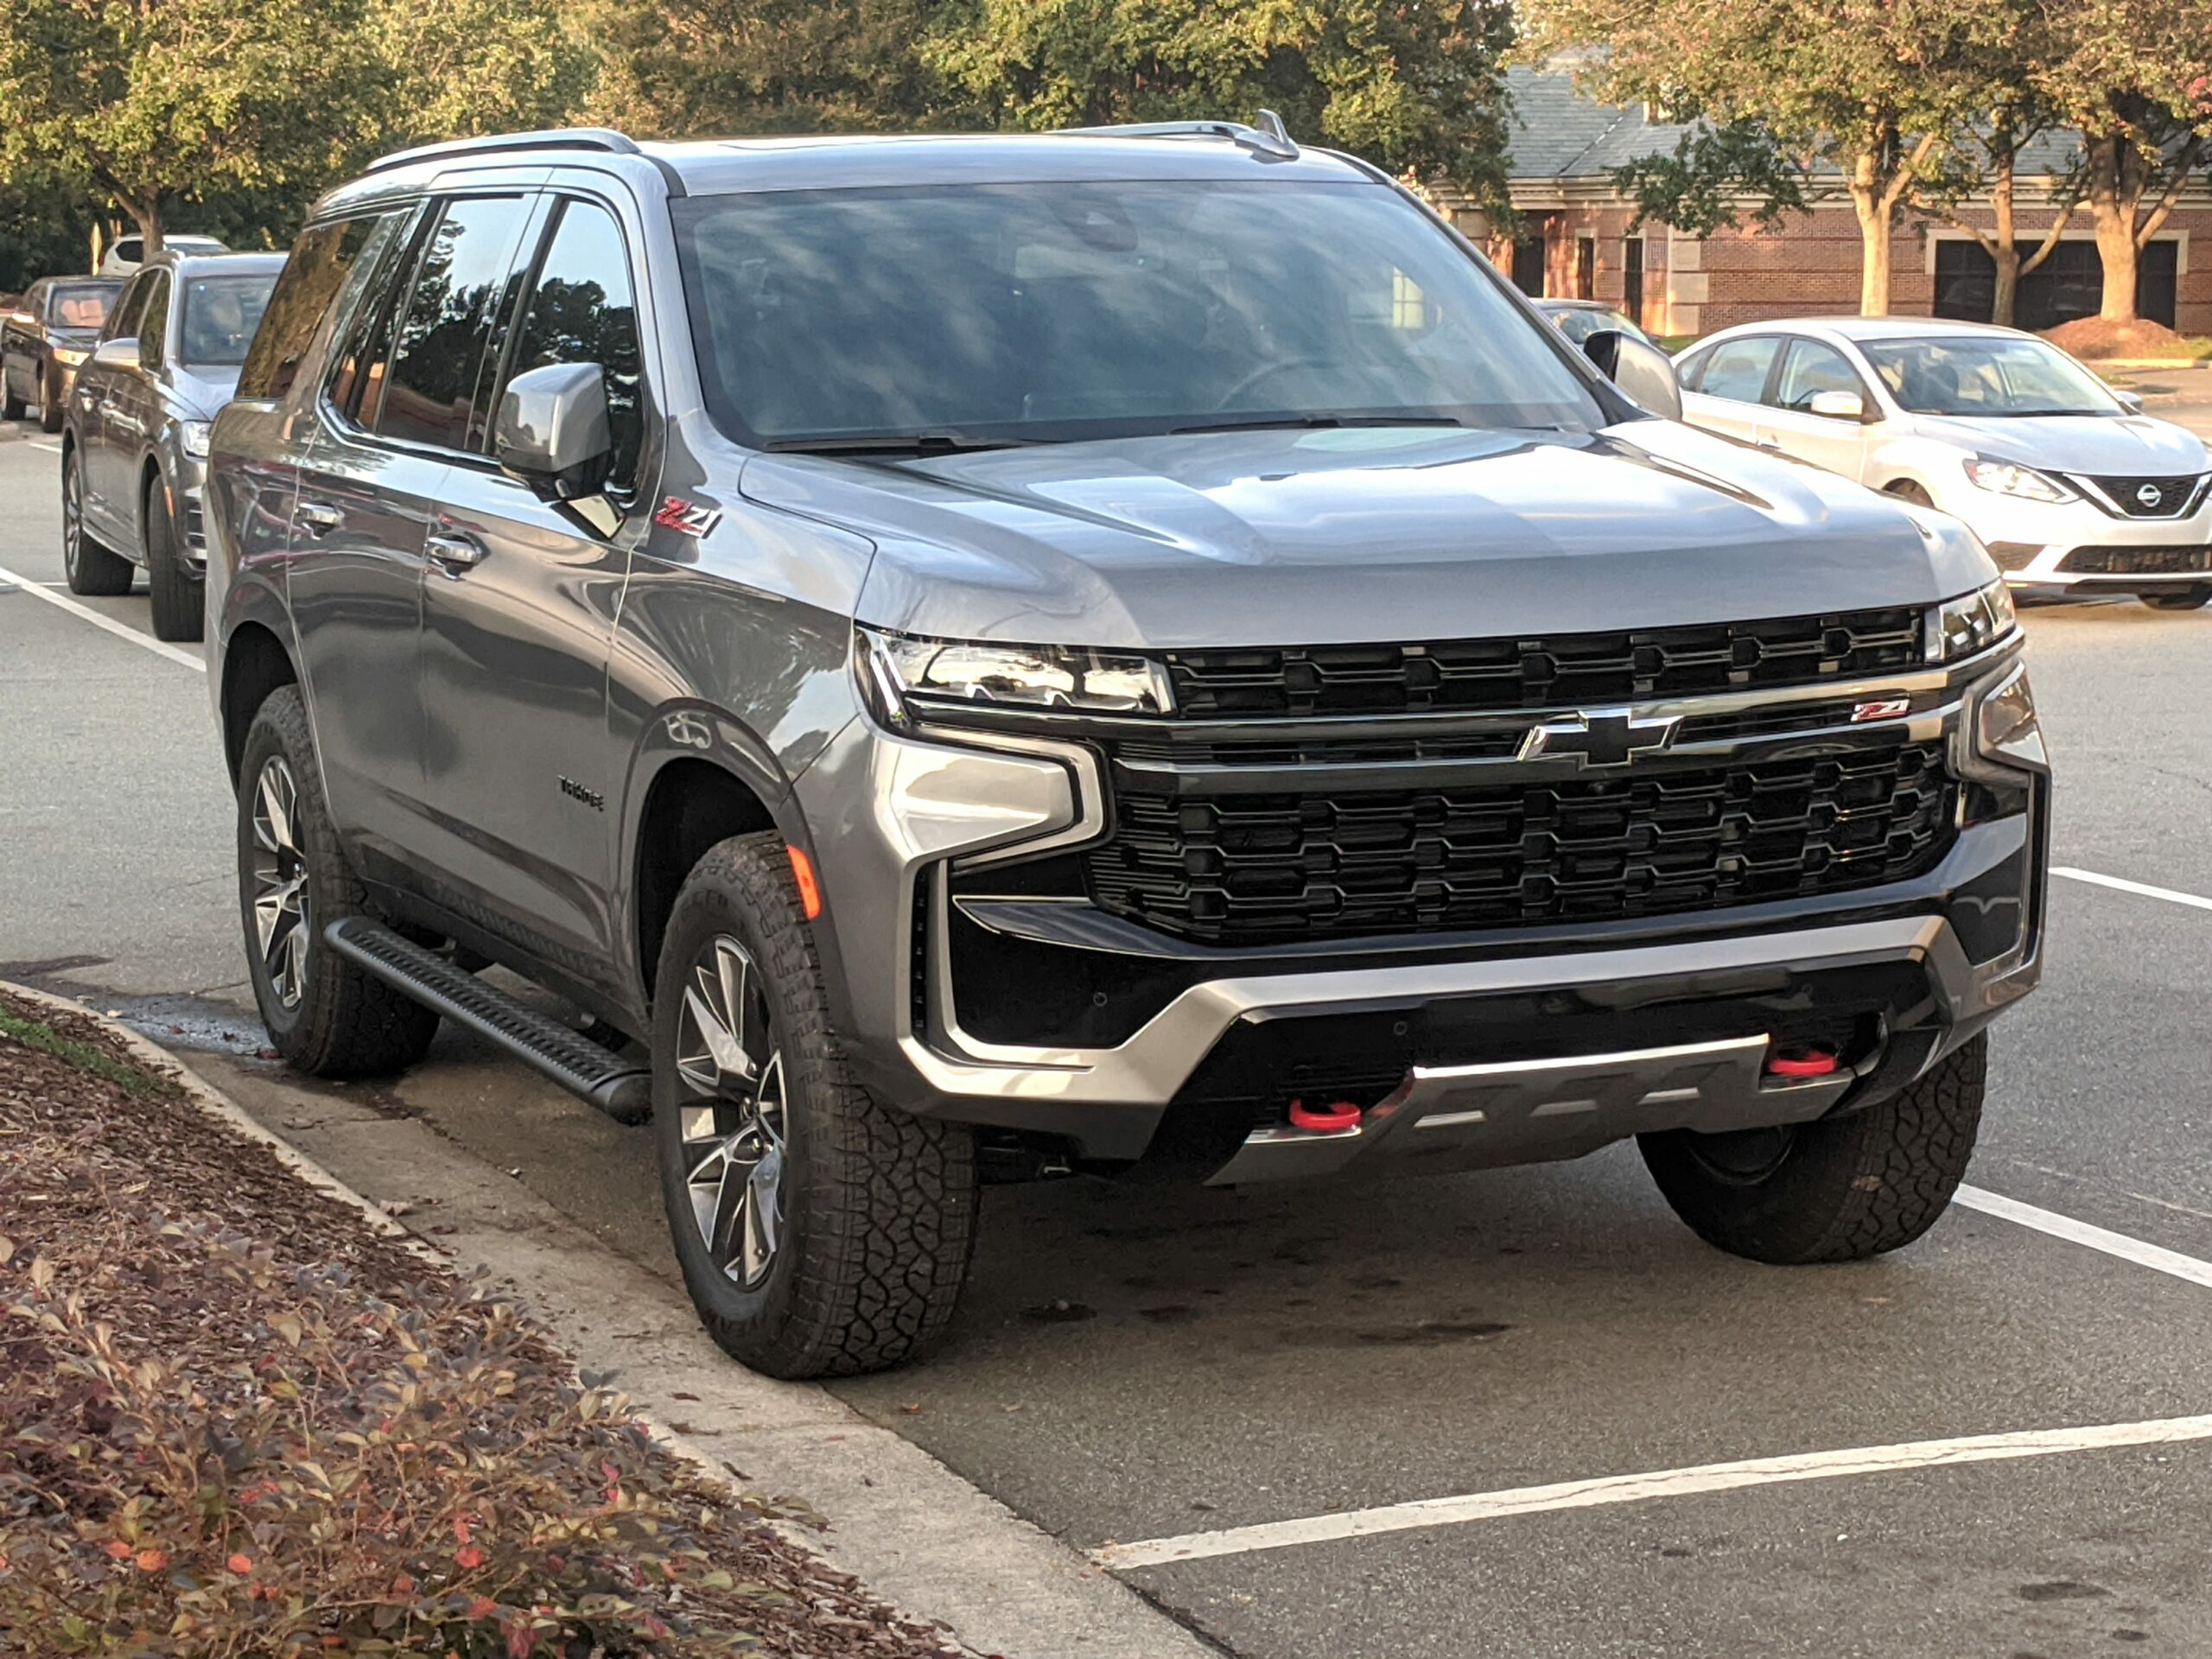 2021 chevrolet tahoe Price, Design and Review